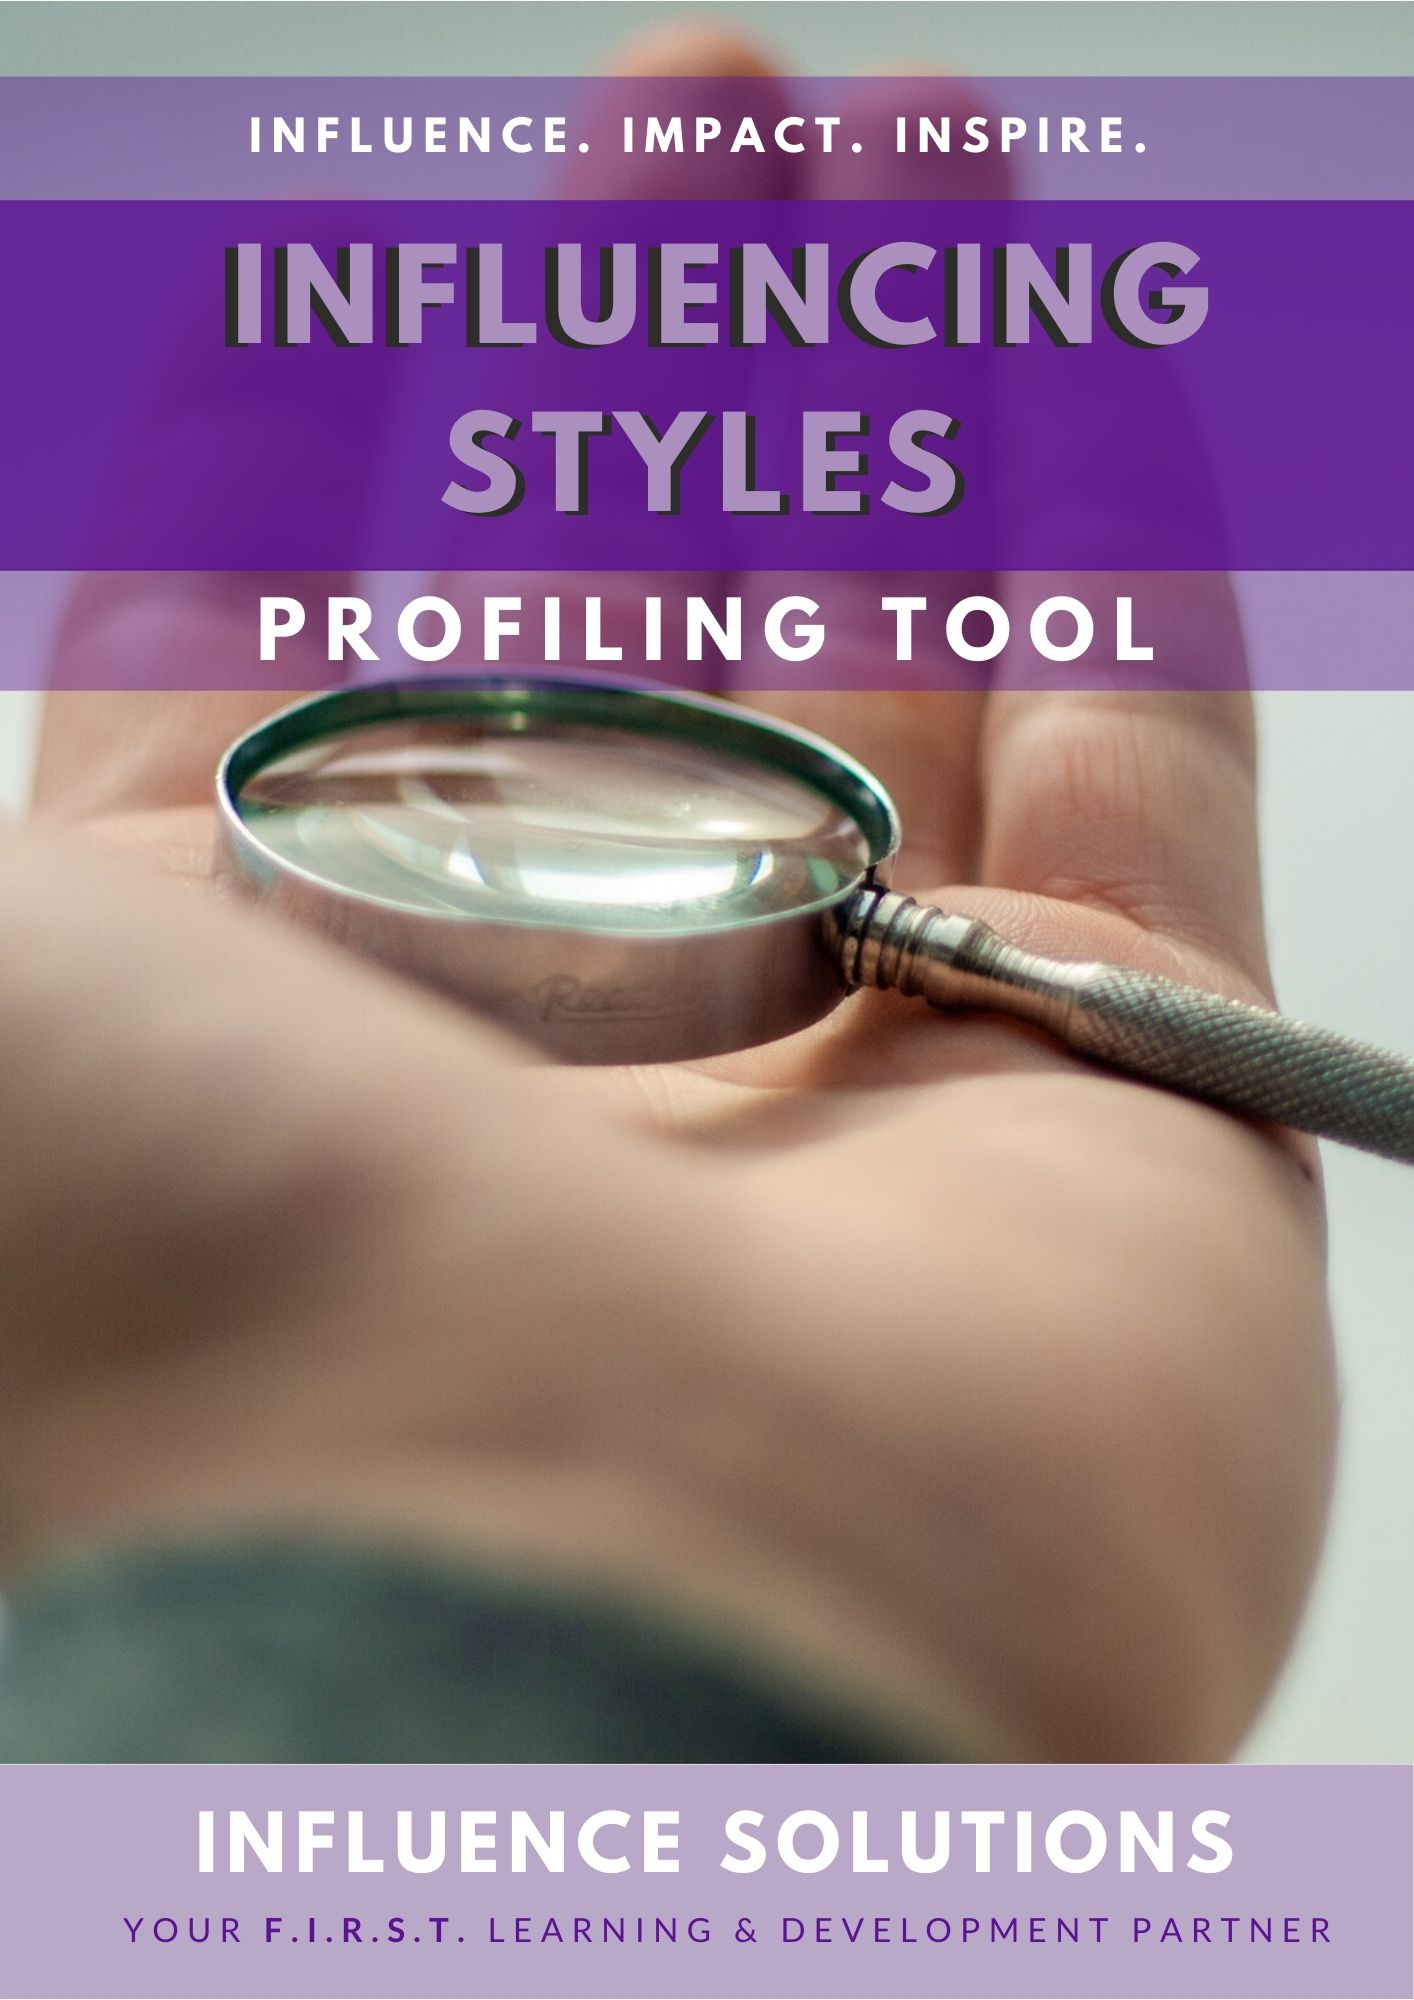 Influencing Styles profile